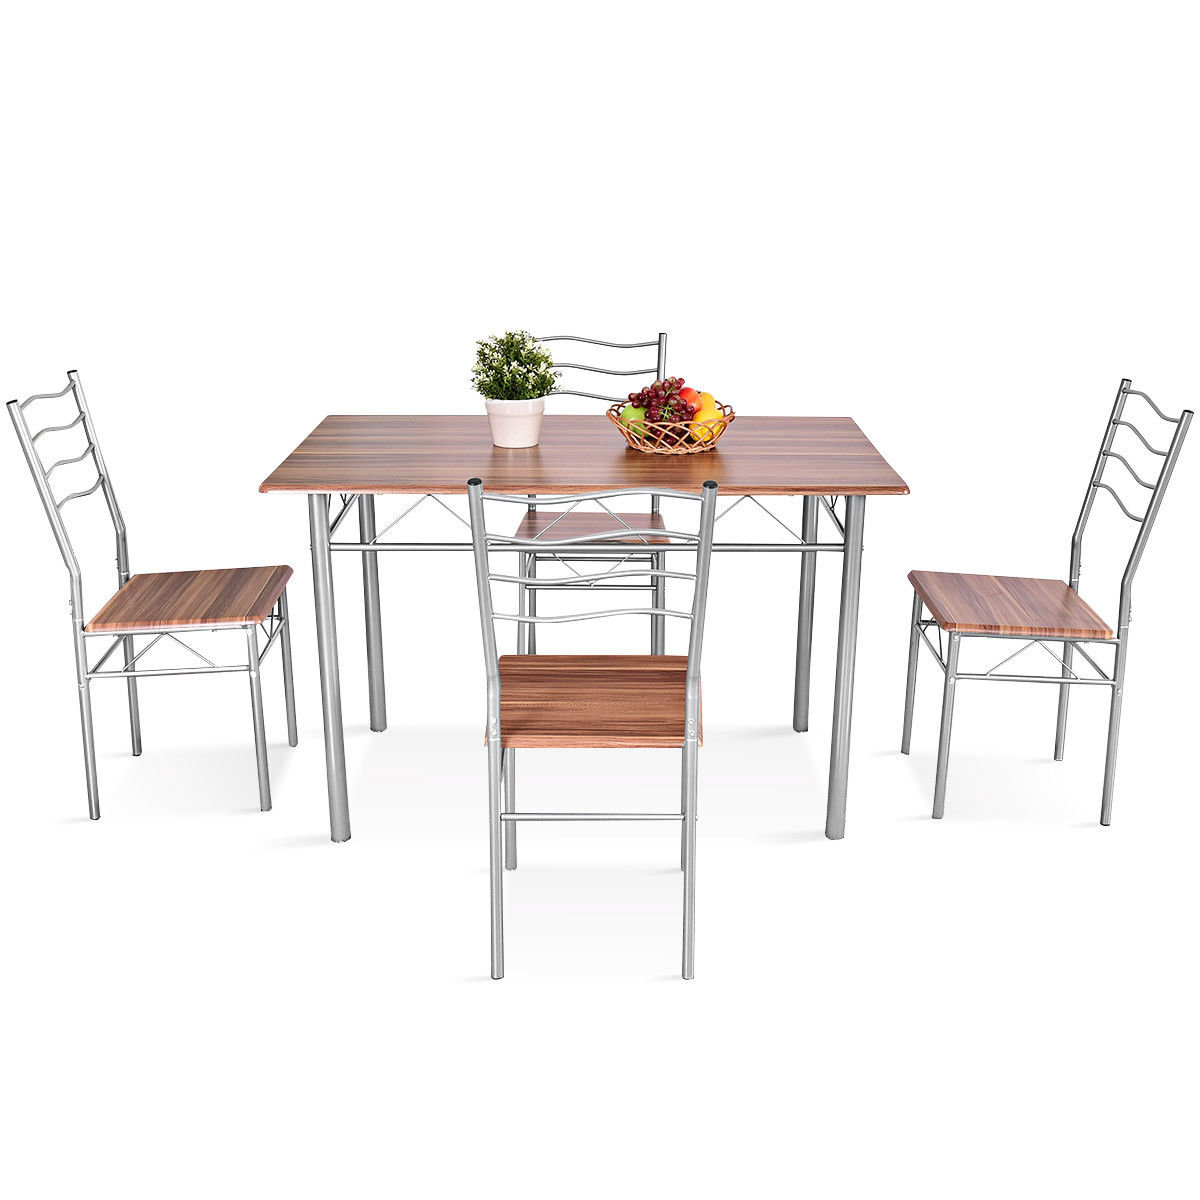 Ebay Within Miskell 3 Piece Dining Sets (View 6 of 20)